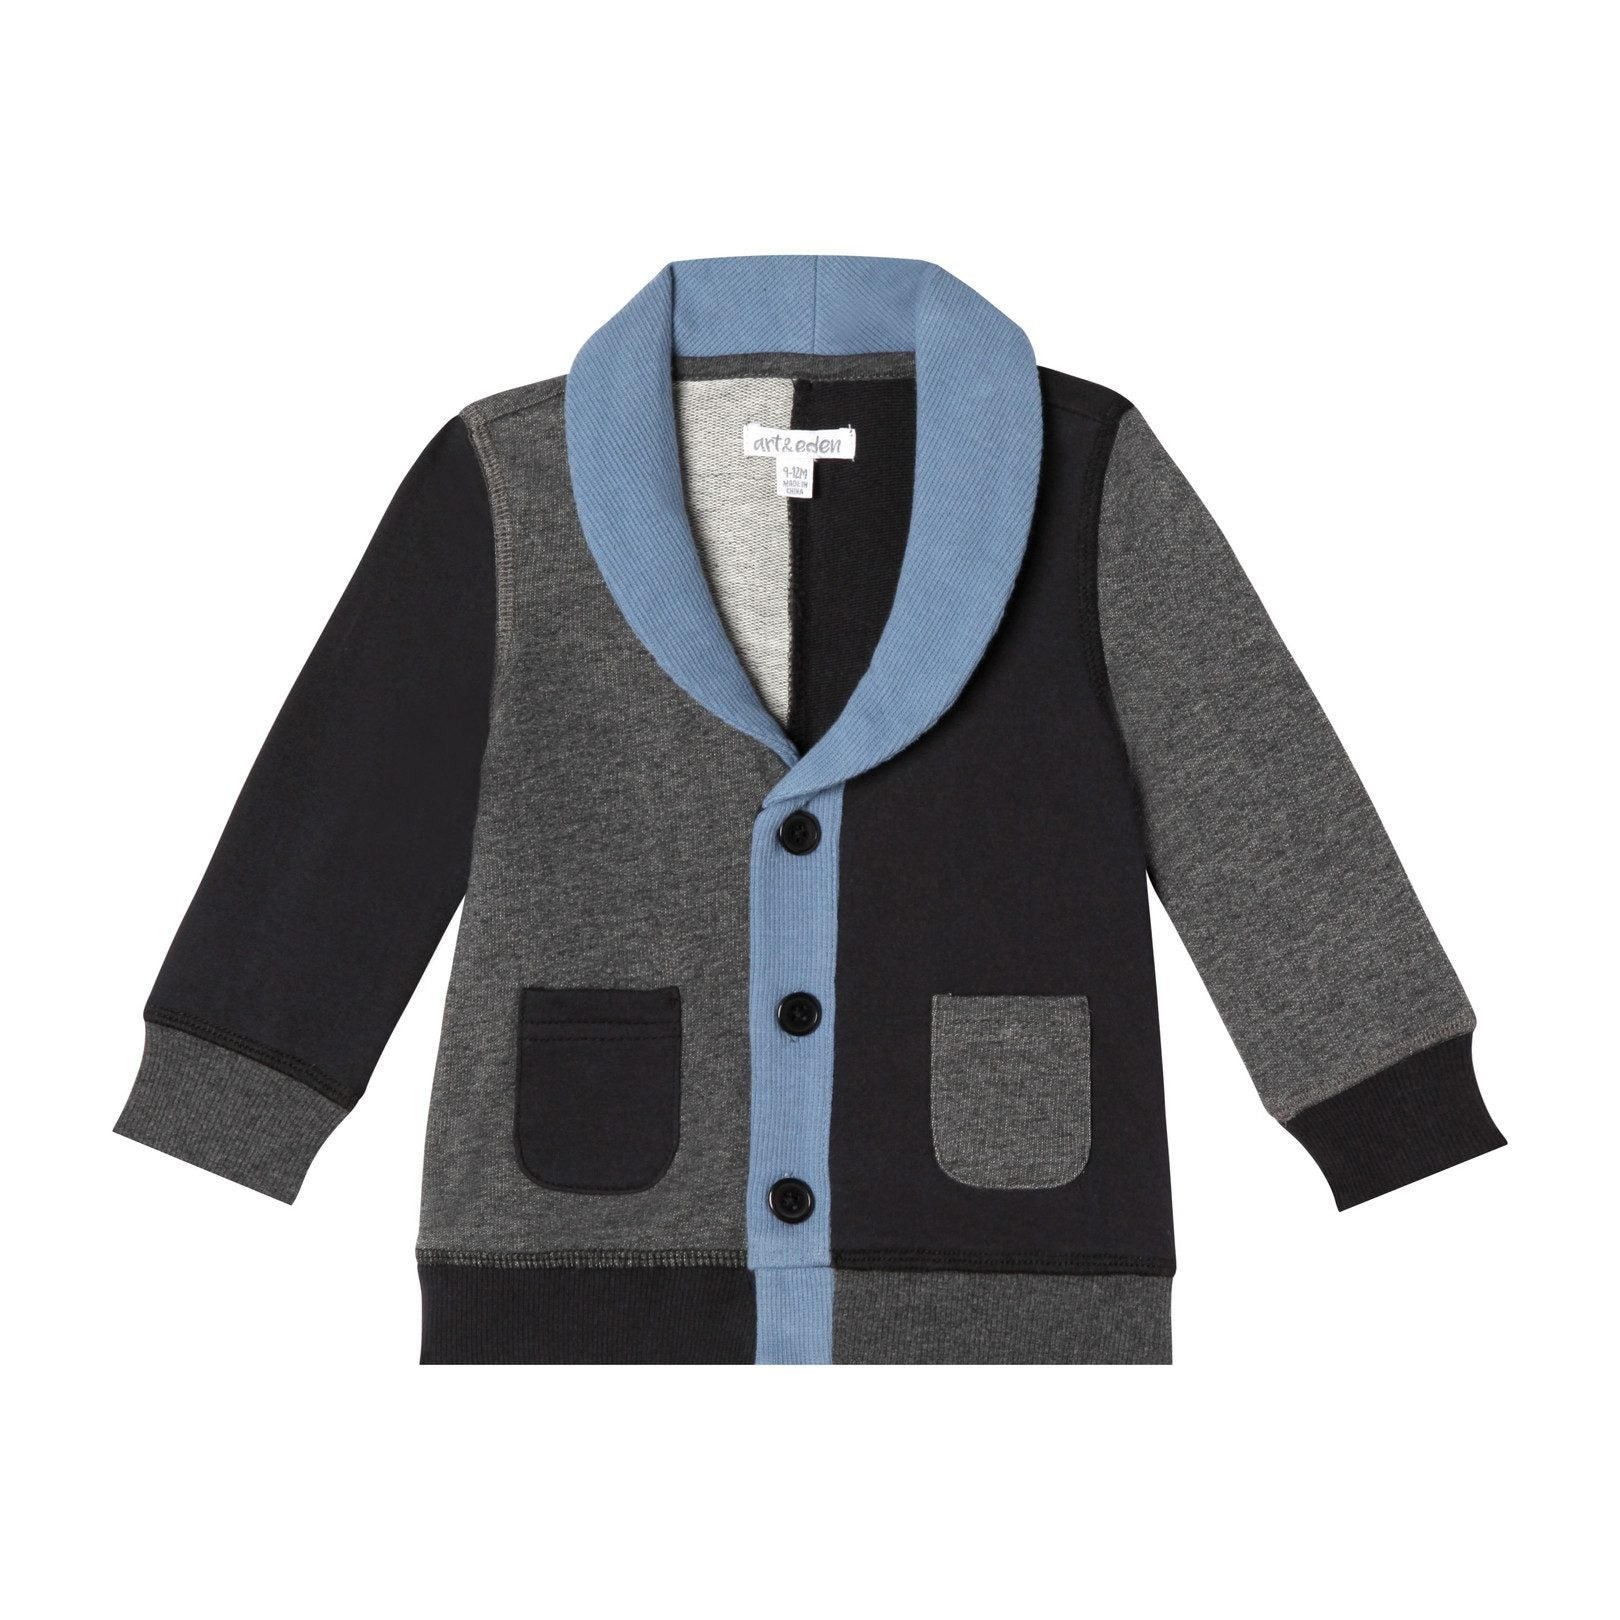 Art & Eden Organic Cotton Mini Pierre Jacket